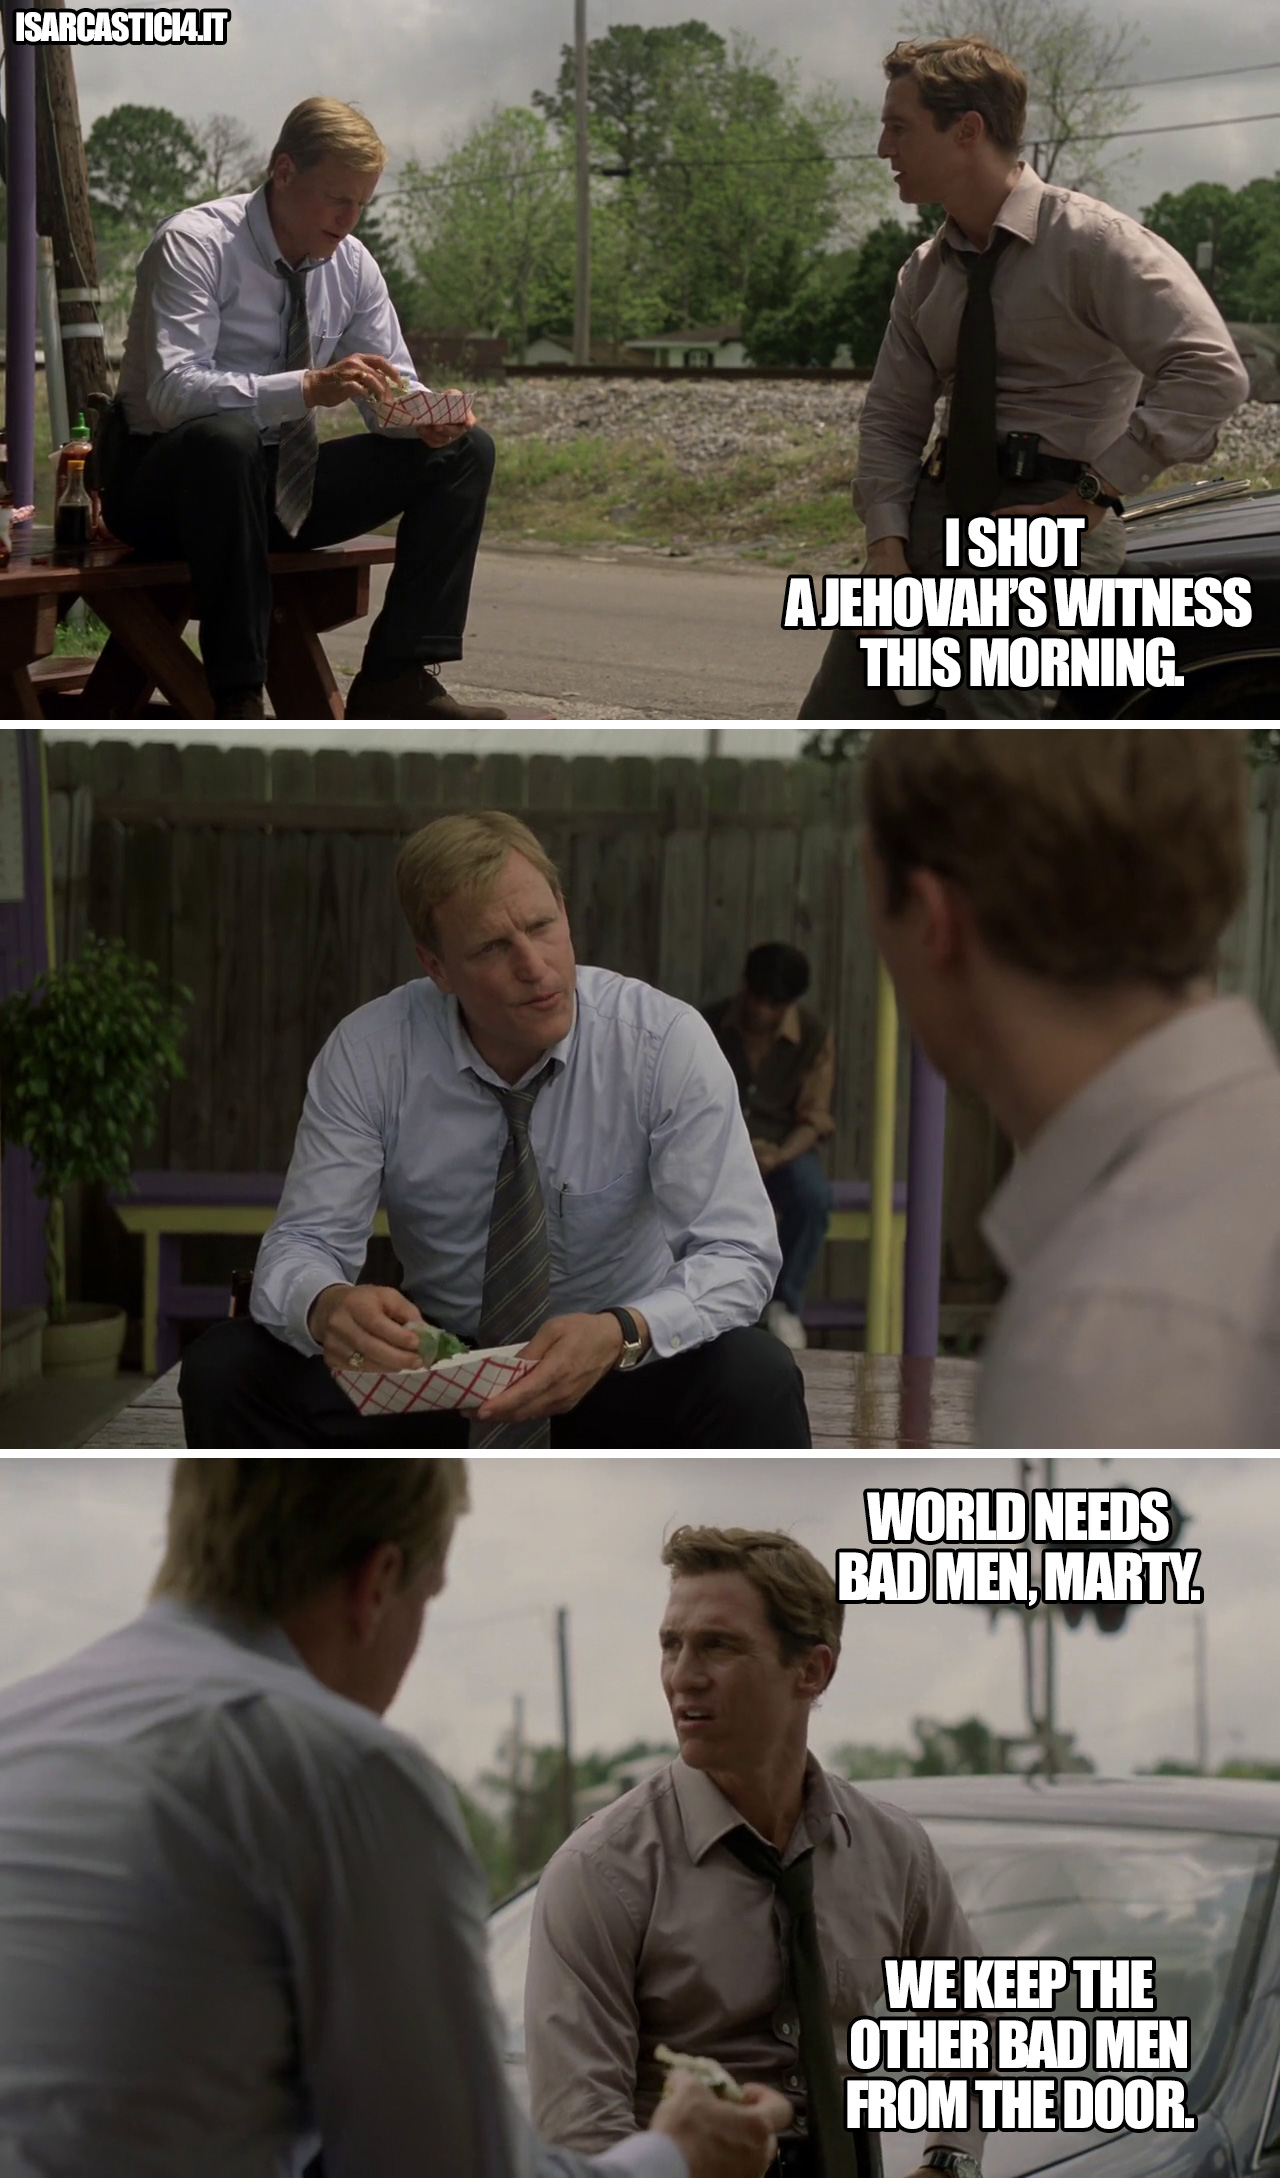 True detective meme - World needs bad men. We keep the other bad men from the door